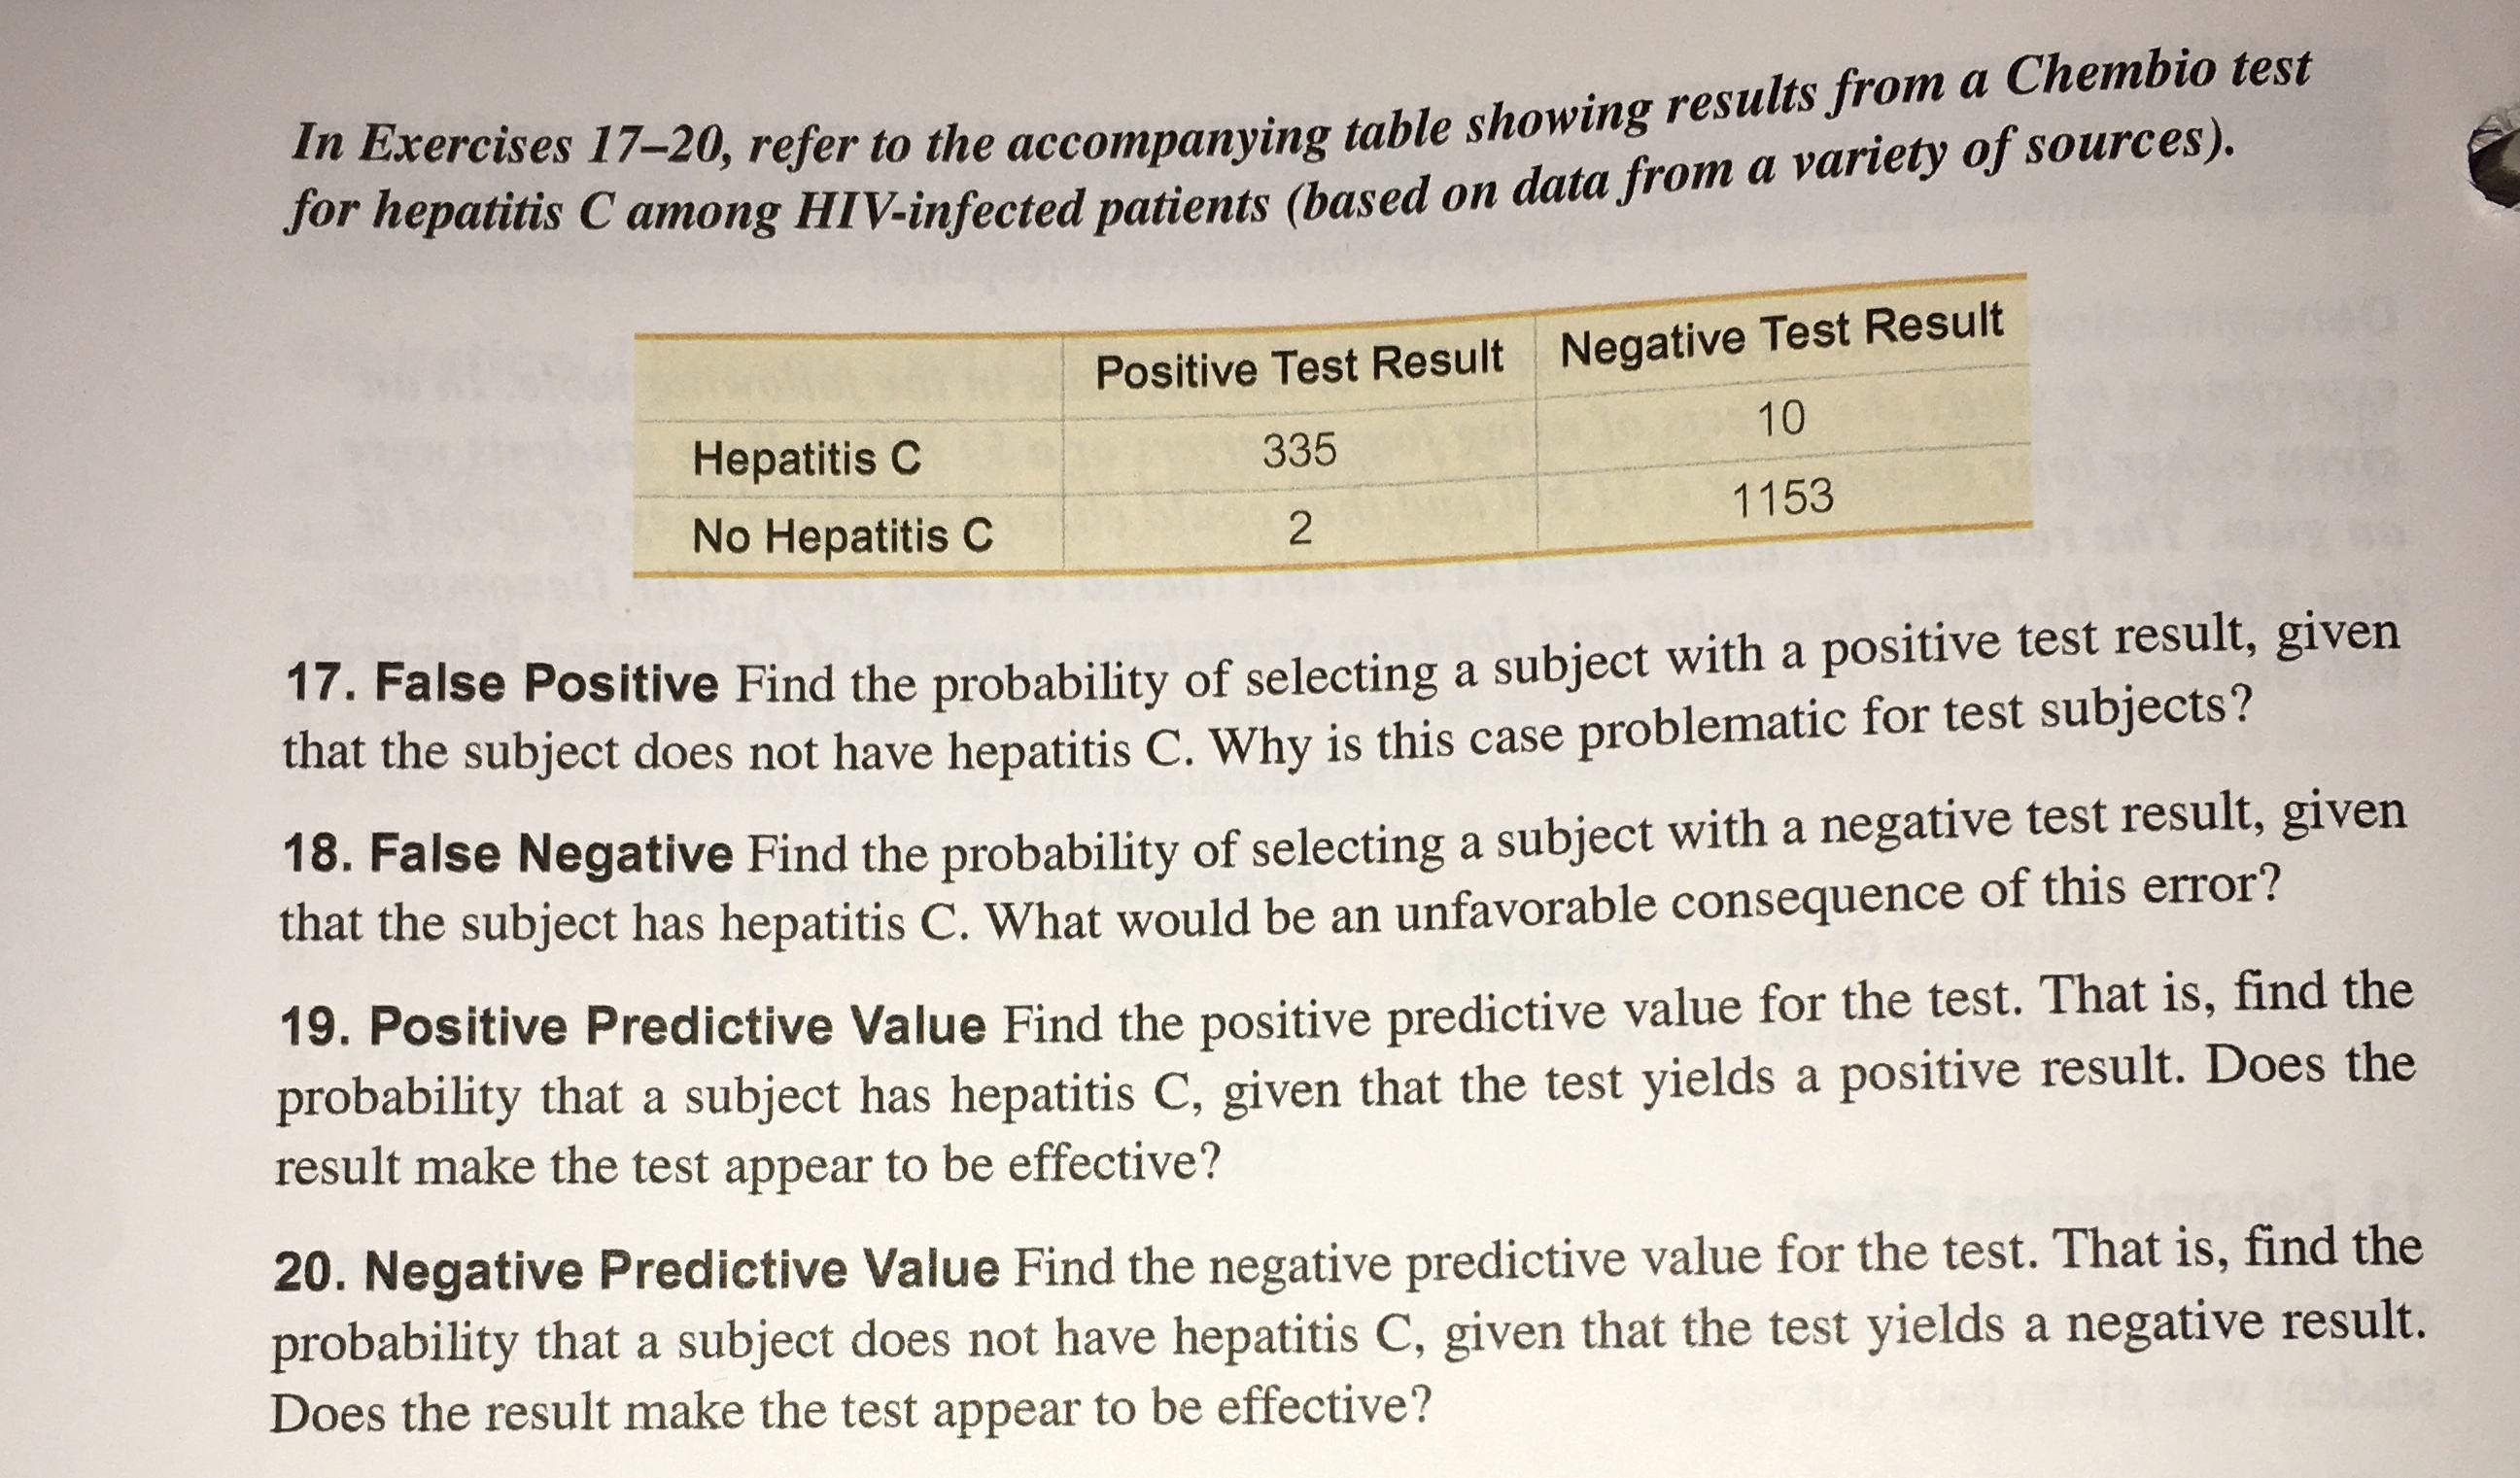 In Exercises 17-20, refer to the accompanying table showing results from a Chembio test for hepatitis C among HIV-infected patients (based on data from a variety of sources). Negative Test Result Positive Test Result 10 Hepatitis C 335 1153 No Hepatitis C 2 17. False Positive Find the probability of selecting a subject with a positive test result, given that the subject does not have hepatitis C. Why is this case problematic for test subjects? 18. False Negative Find the probability of selecting a subject with a negative test result, given that the subject has hepatitis C. What would be an unfavorable consequence of this error? 19. Positive Predictive Value Find the positive predictive value for the test. That is, find the probability that a subject has hepatitis C, given that the test yields a positive result. Does the result make the test appear to be effective? 20. Negative Predictive Value Find the negative predictive value for the test. That is, find the probability that a subject does not have hepatitis C, given that the test yields a negative result. Does the result make the test appear to be effective?